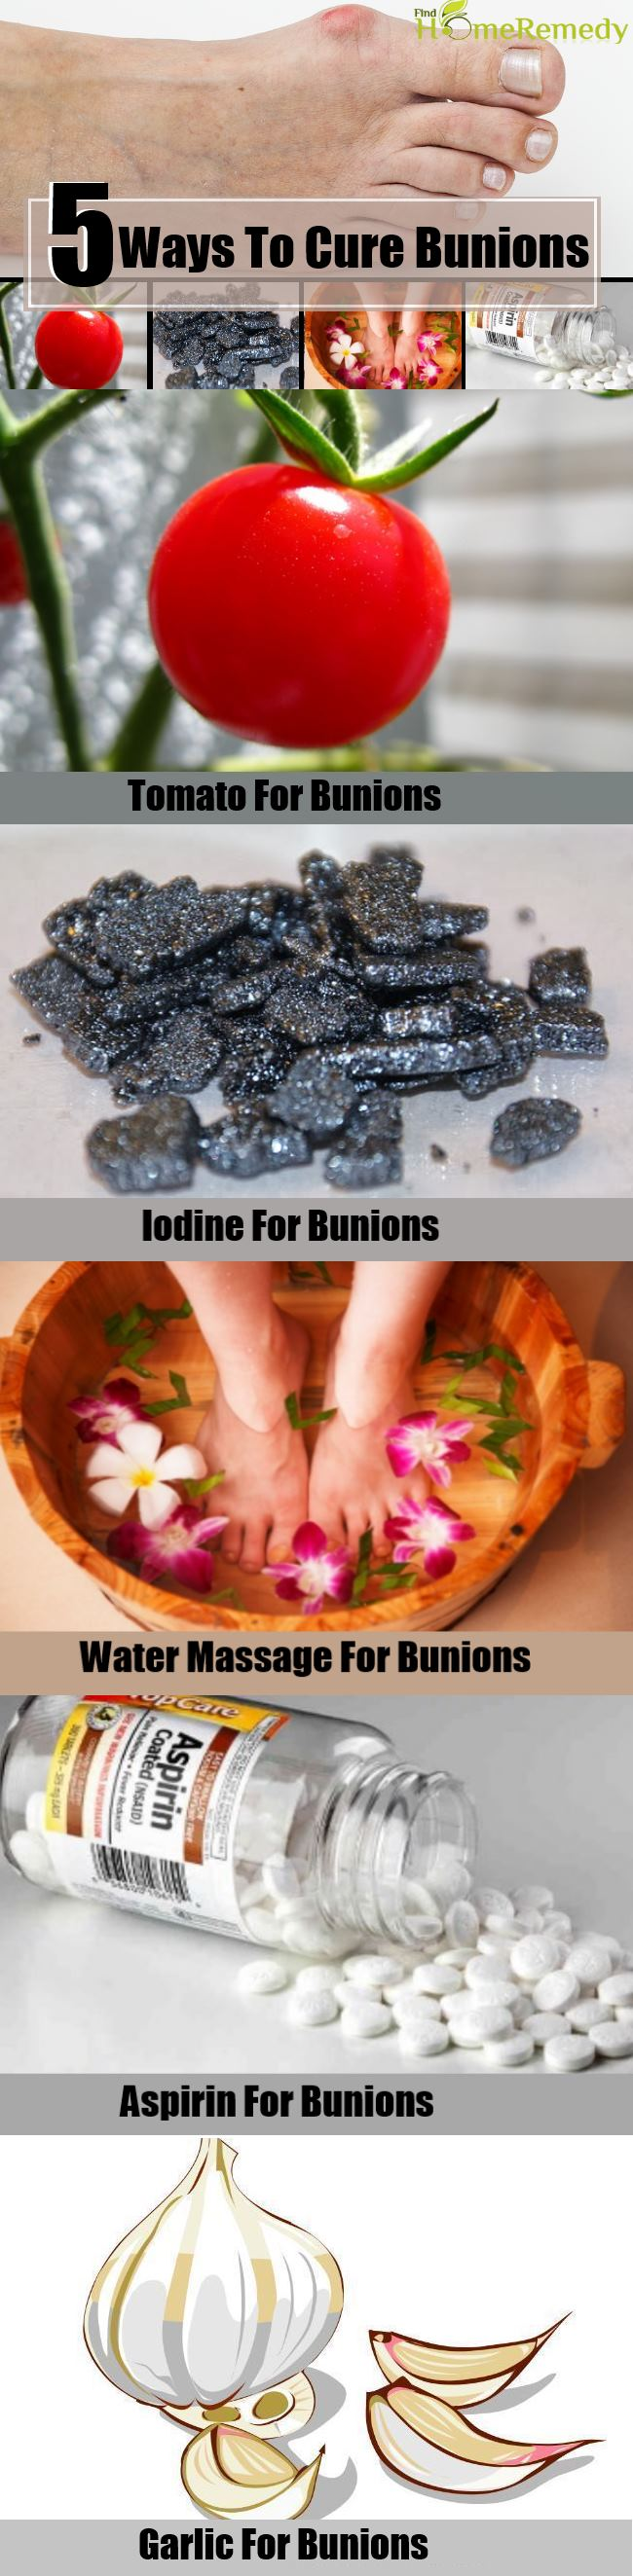 5 Ways To Cure Bunions